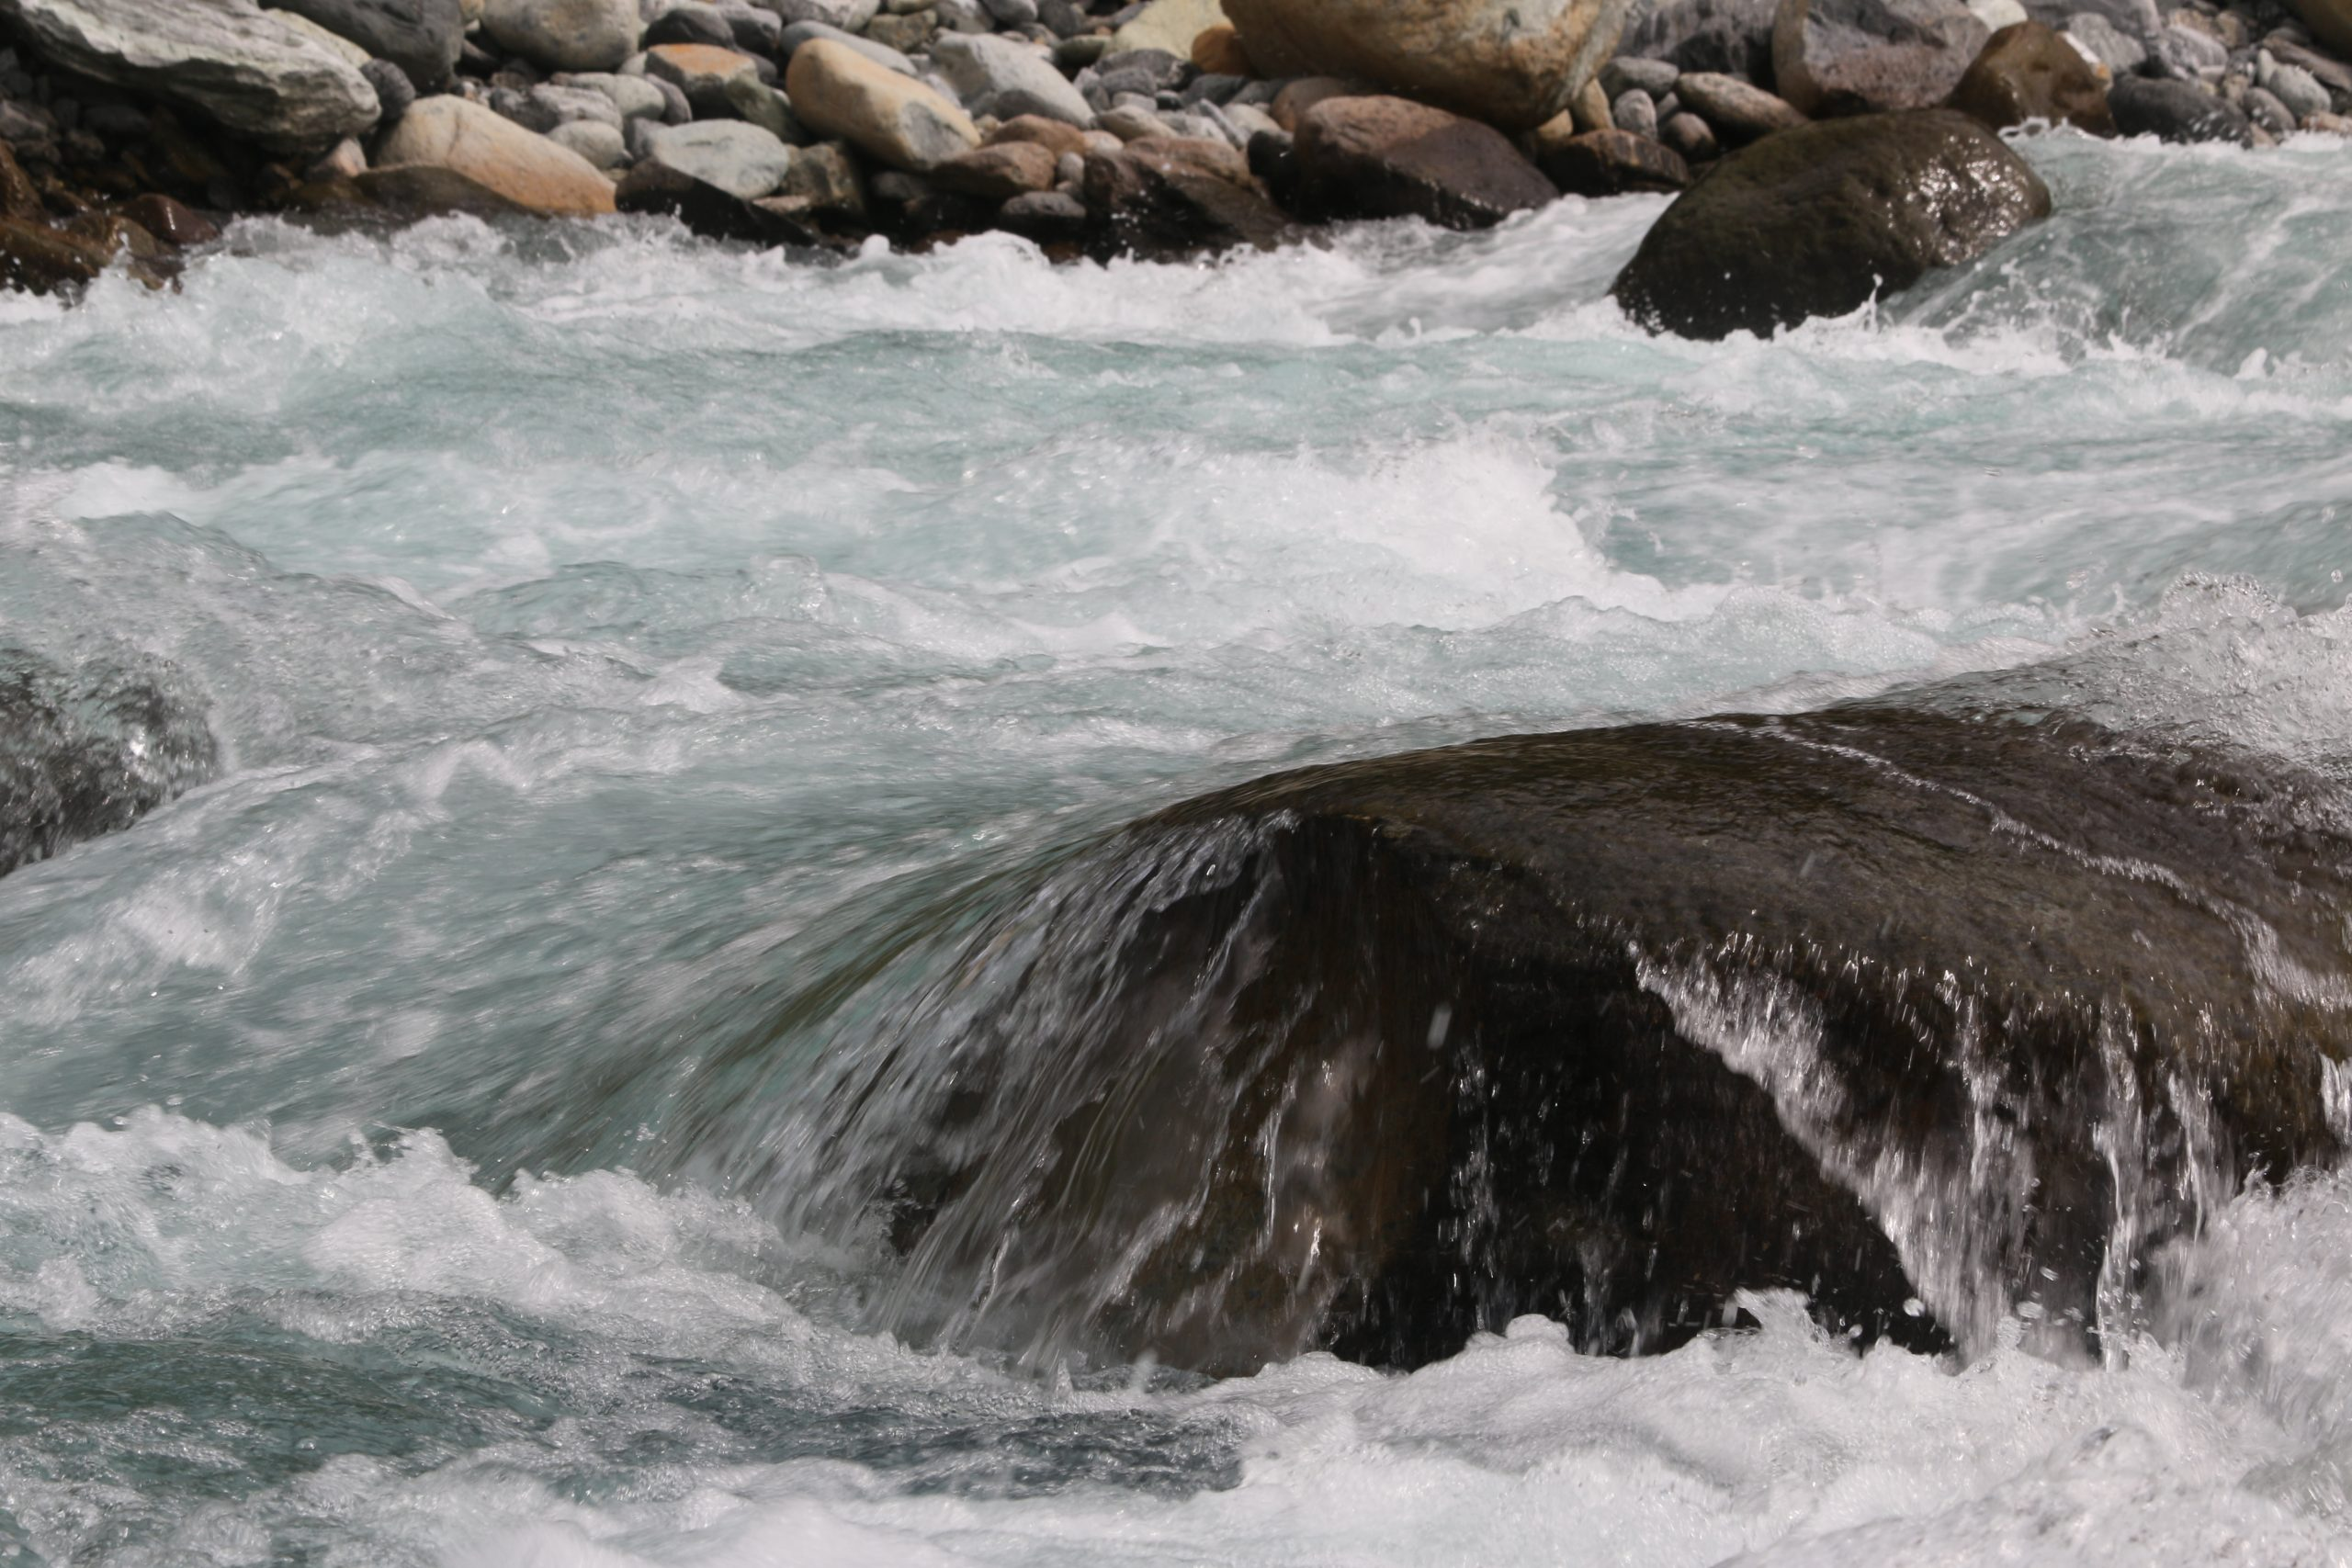 The river's strong rapids